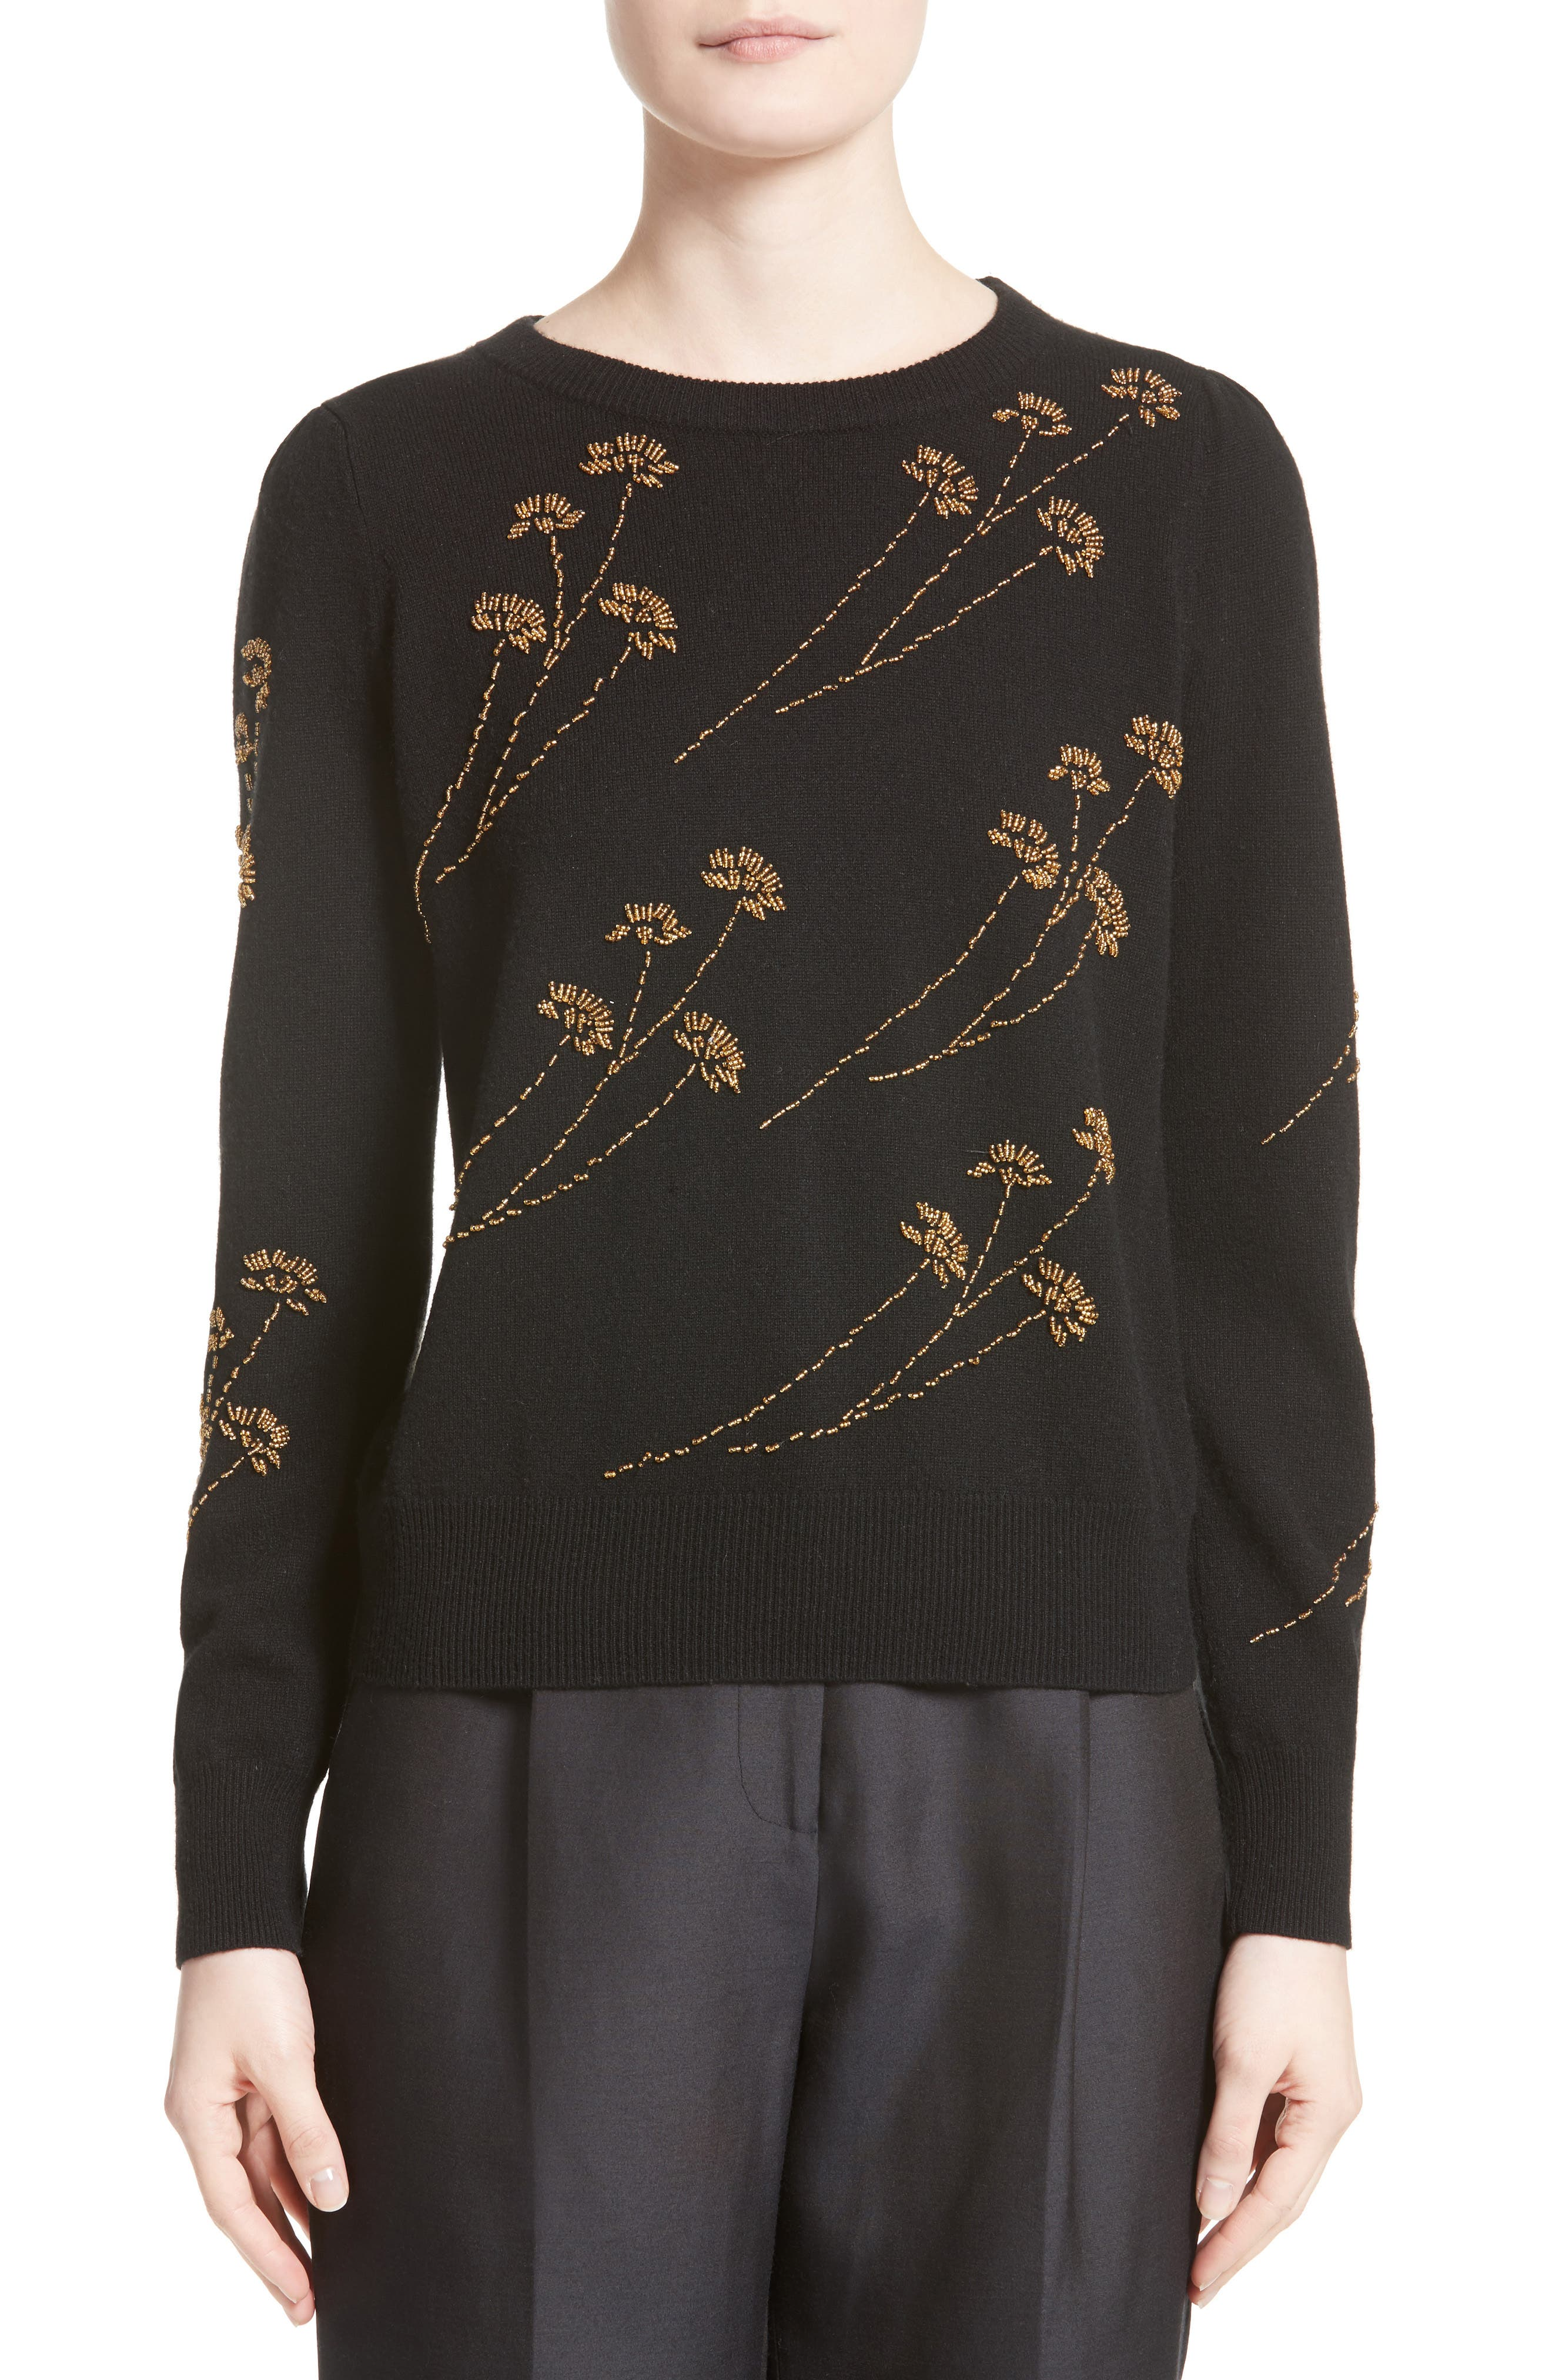 Co Beaded Wool & Cashmere Sweater